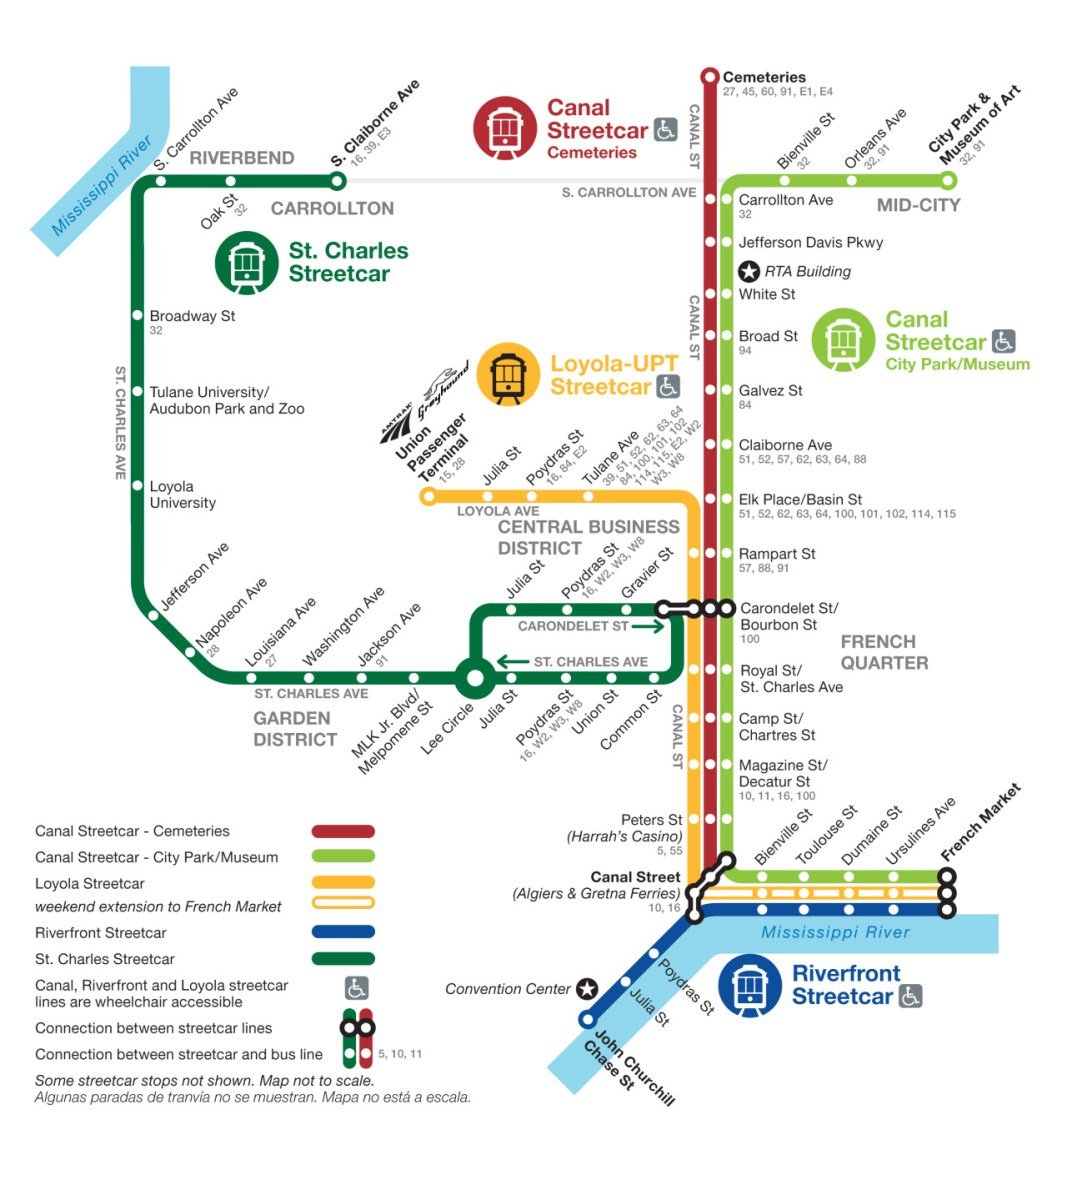 rta new orleans map Transit Maps Official Map Streetcar Network New Orleans 2013 rta new orleans map